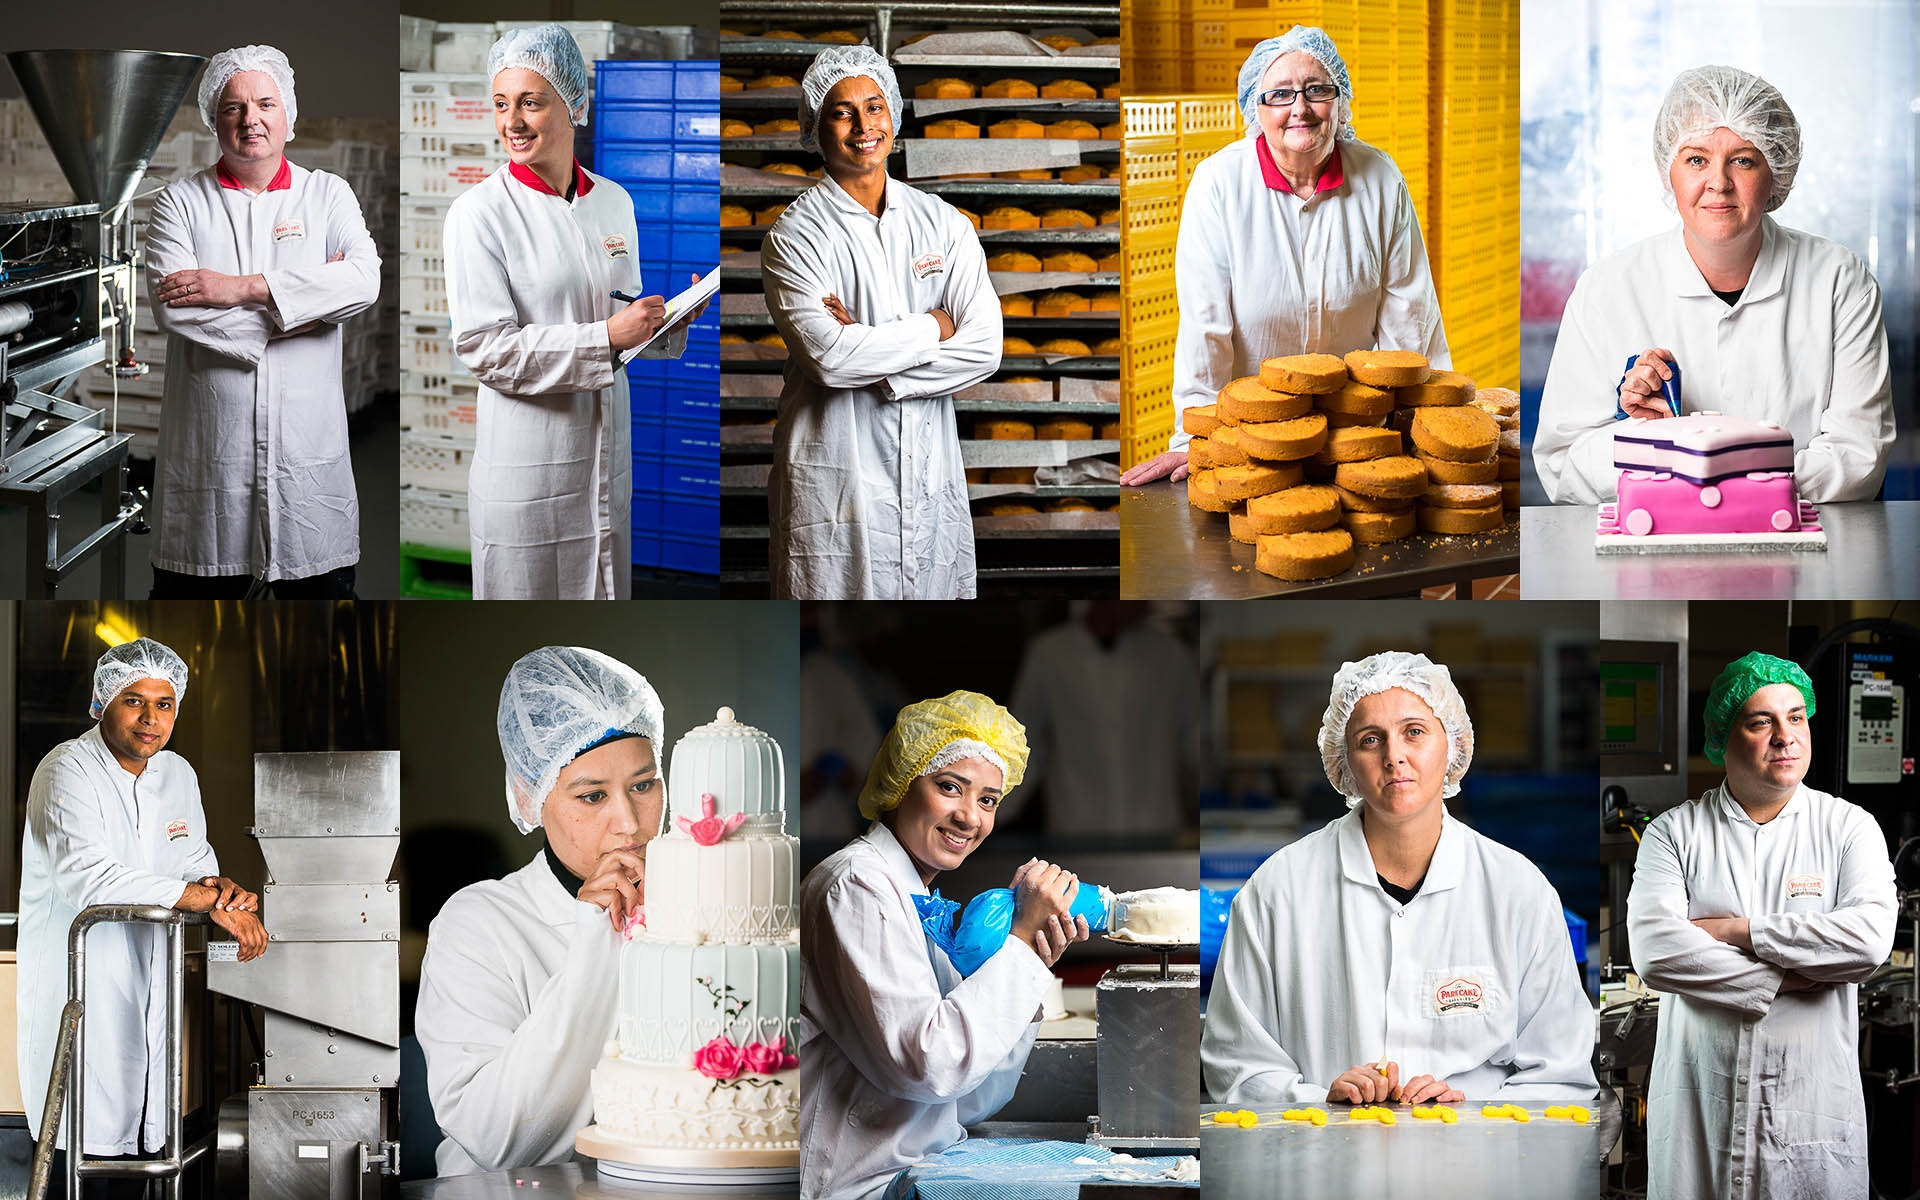 multiple portrait photos of industrial bakery food workers